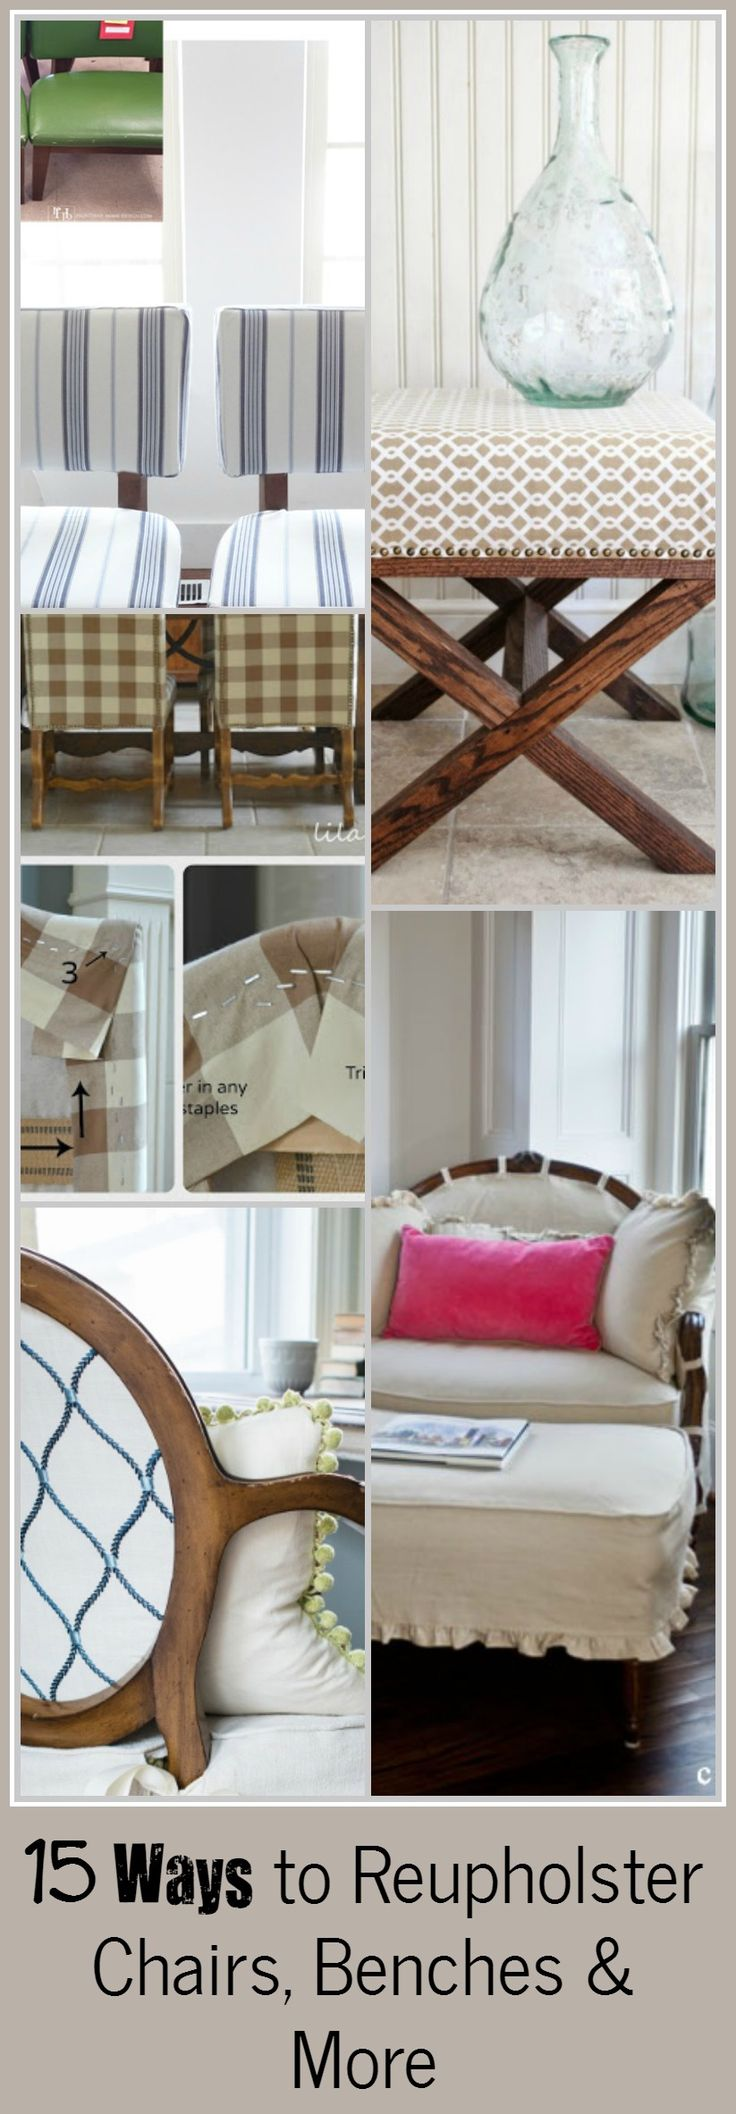 Easy ways to Reupholster furniture! CLICK the link to access hundreds of other tutorials, tips and ideas for DIY home projects.  This site is a MUST for any DIYer.